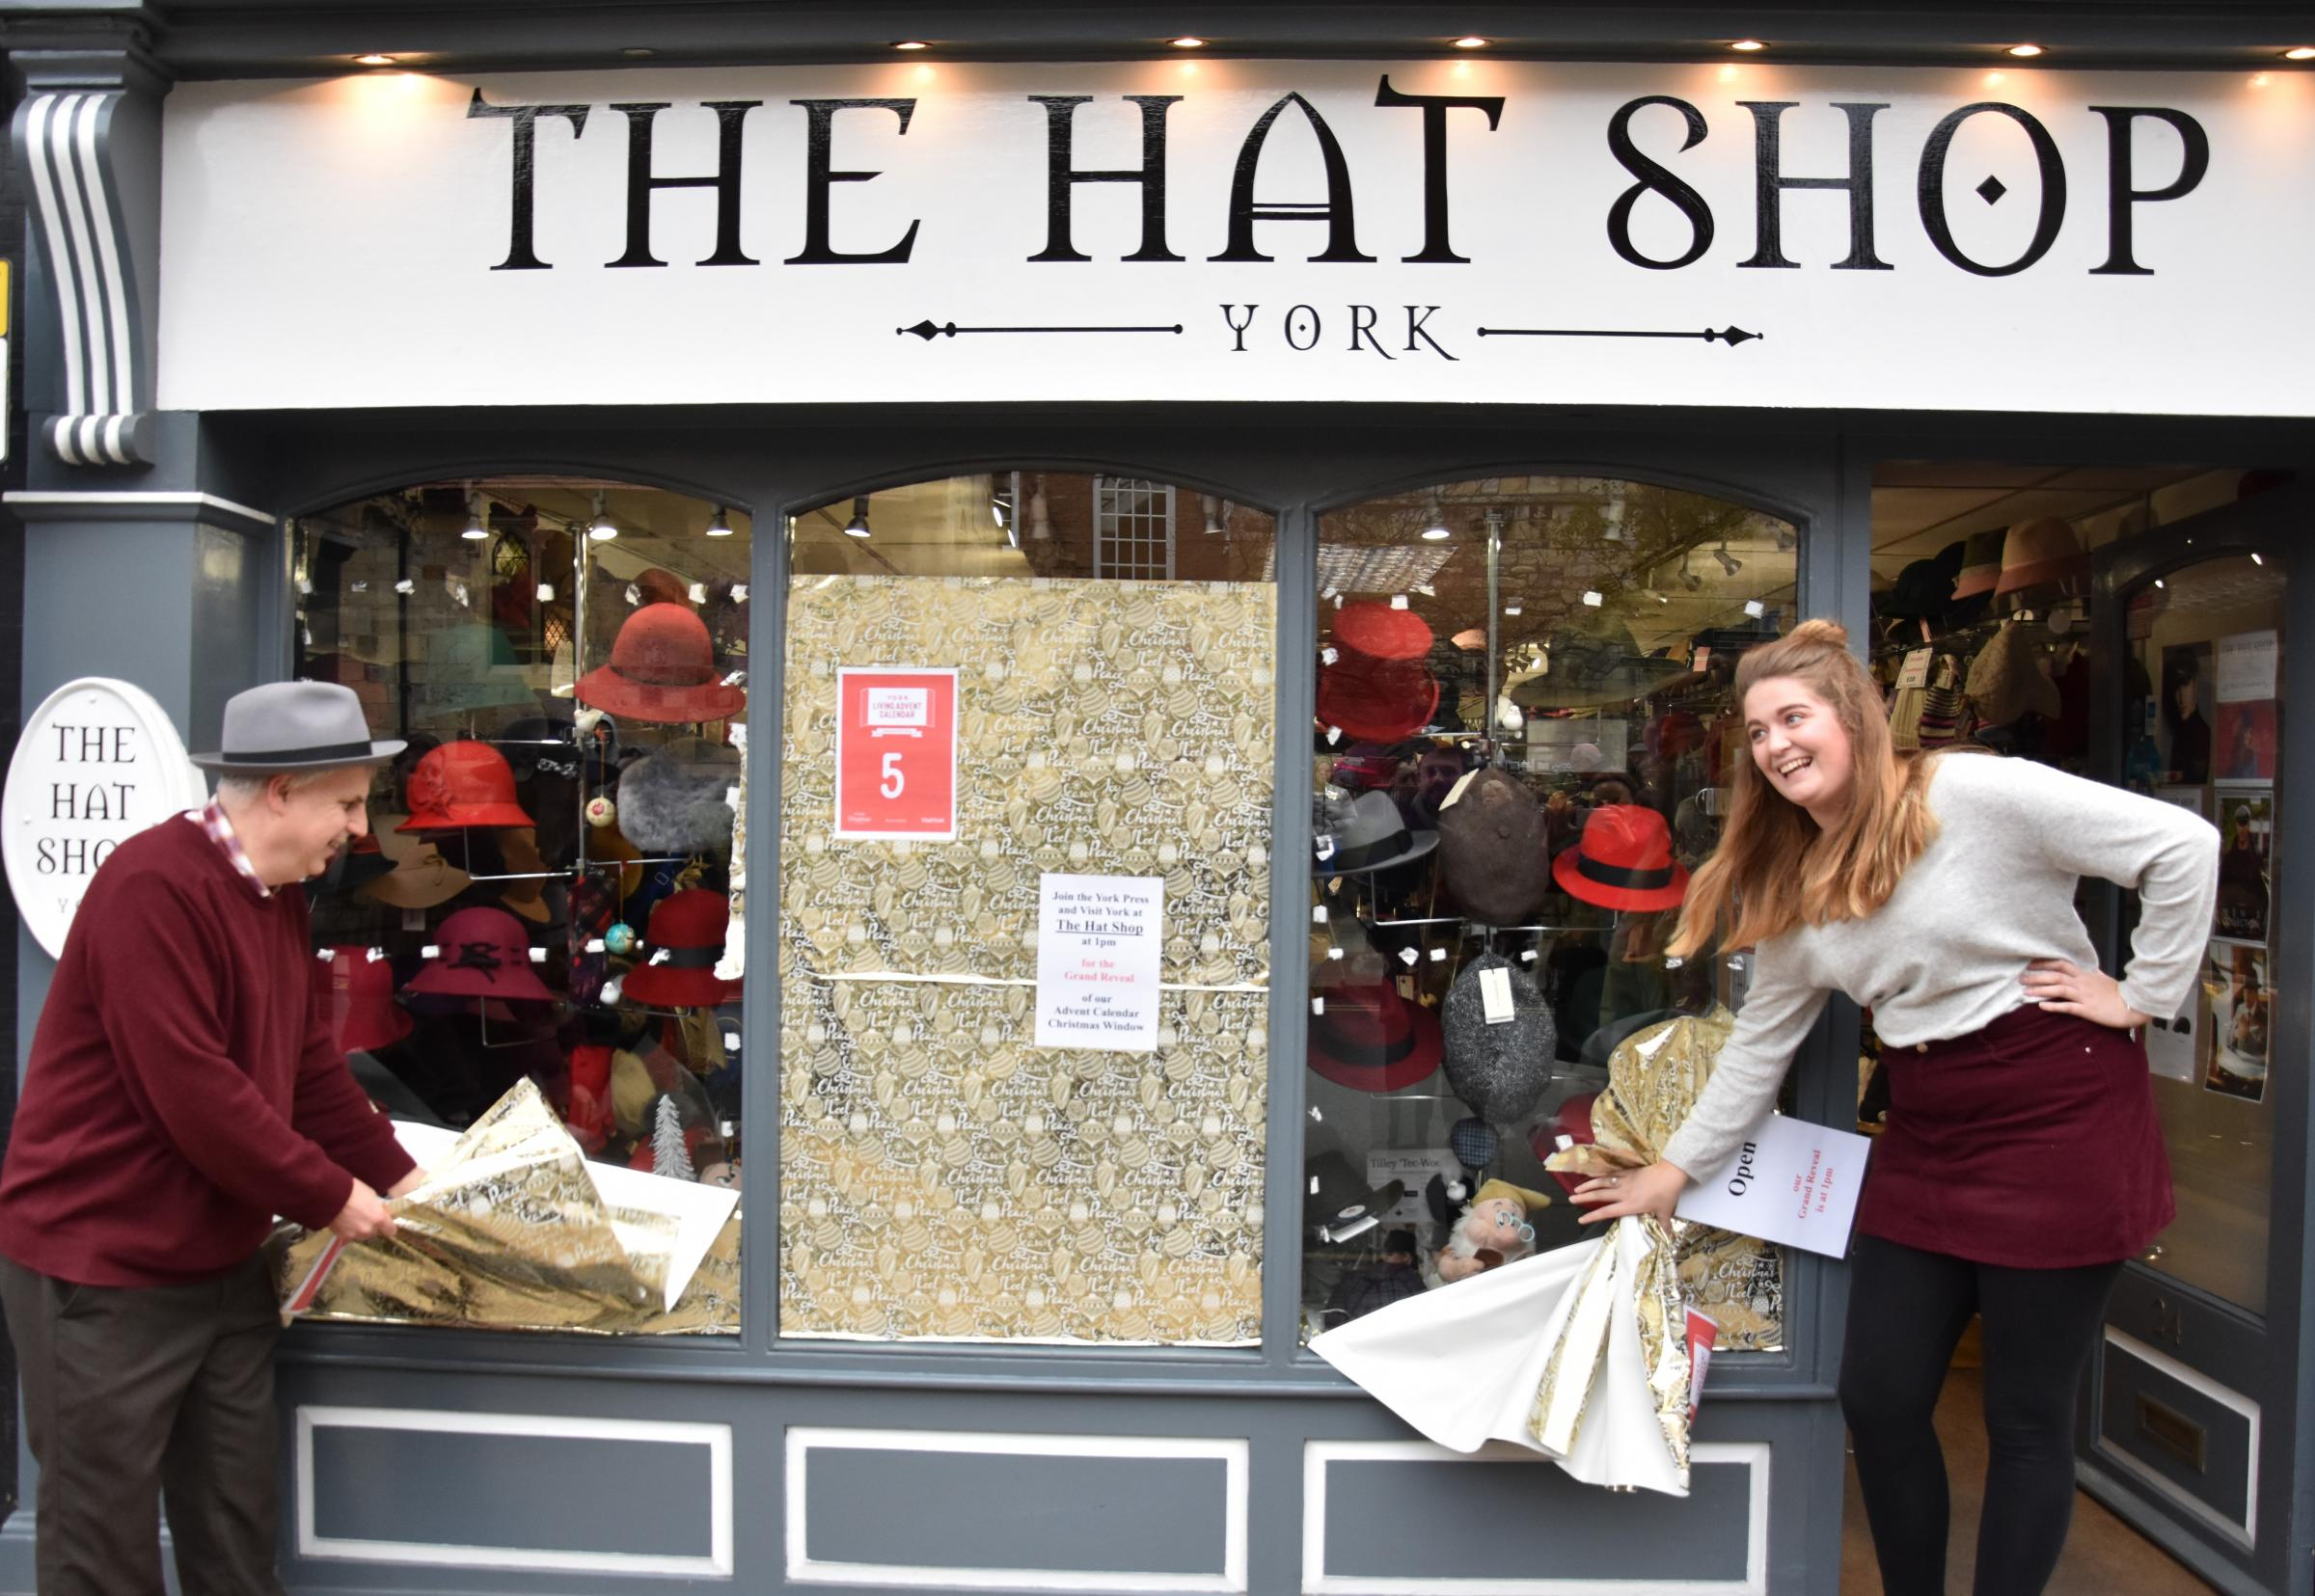 Hats off to latest shop window Advent entry